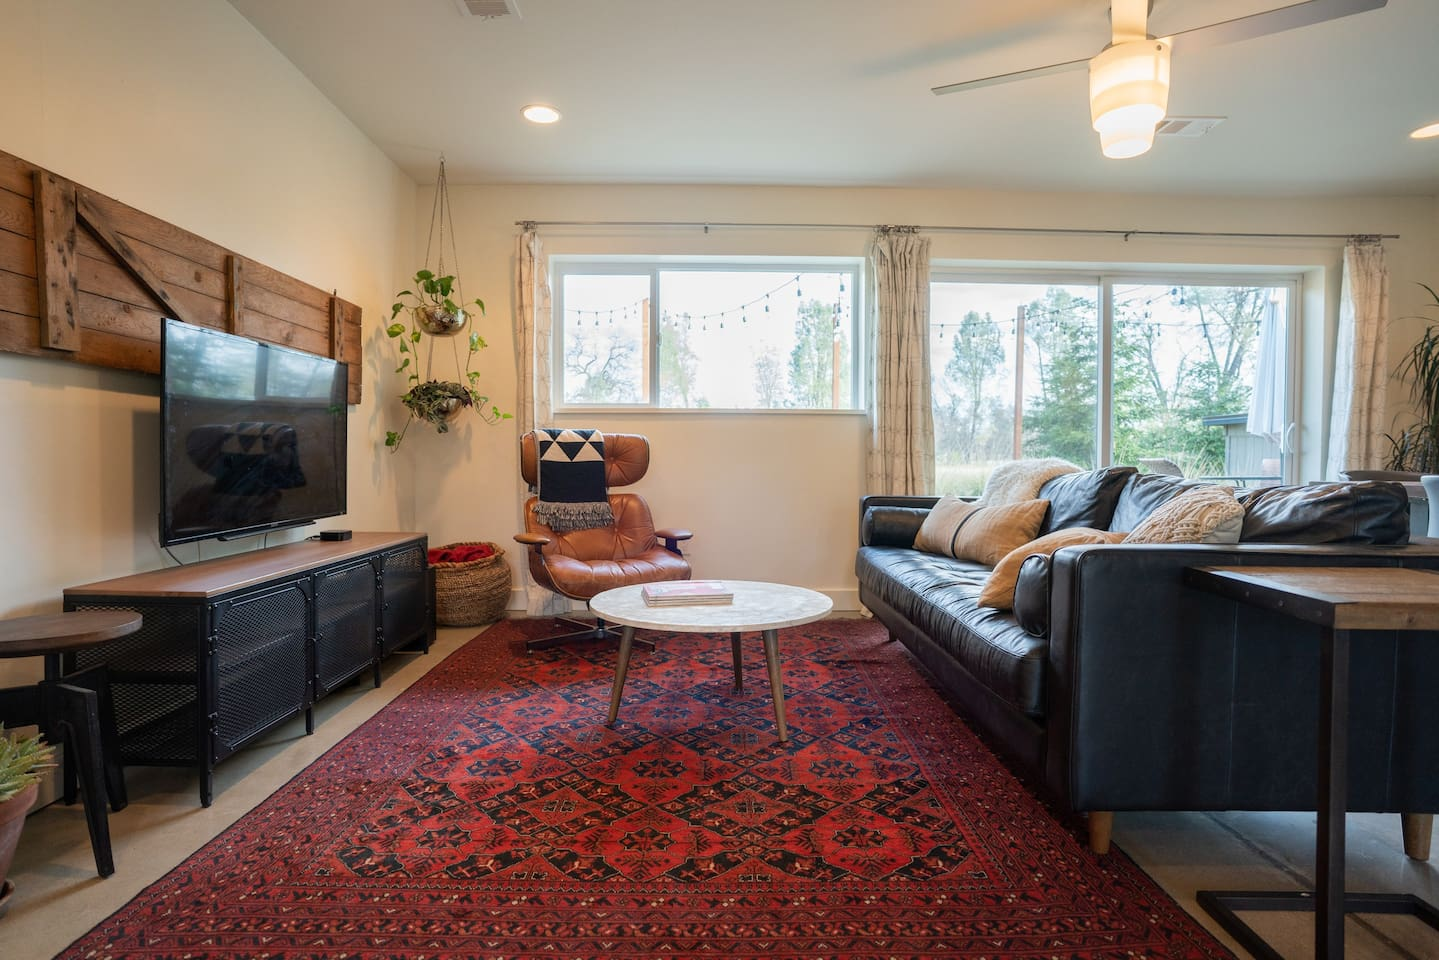 Comfort and style. Living area with antique Persian rug and eclectic furnishings.